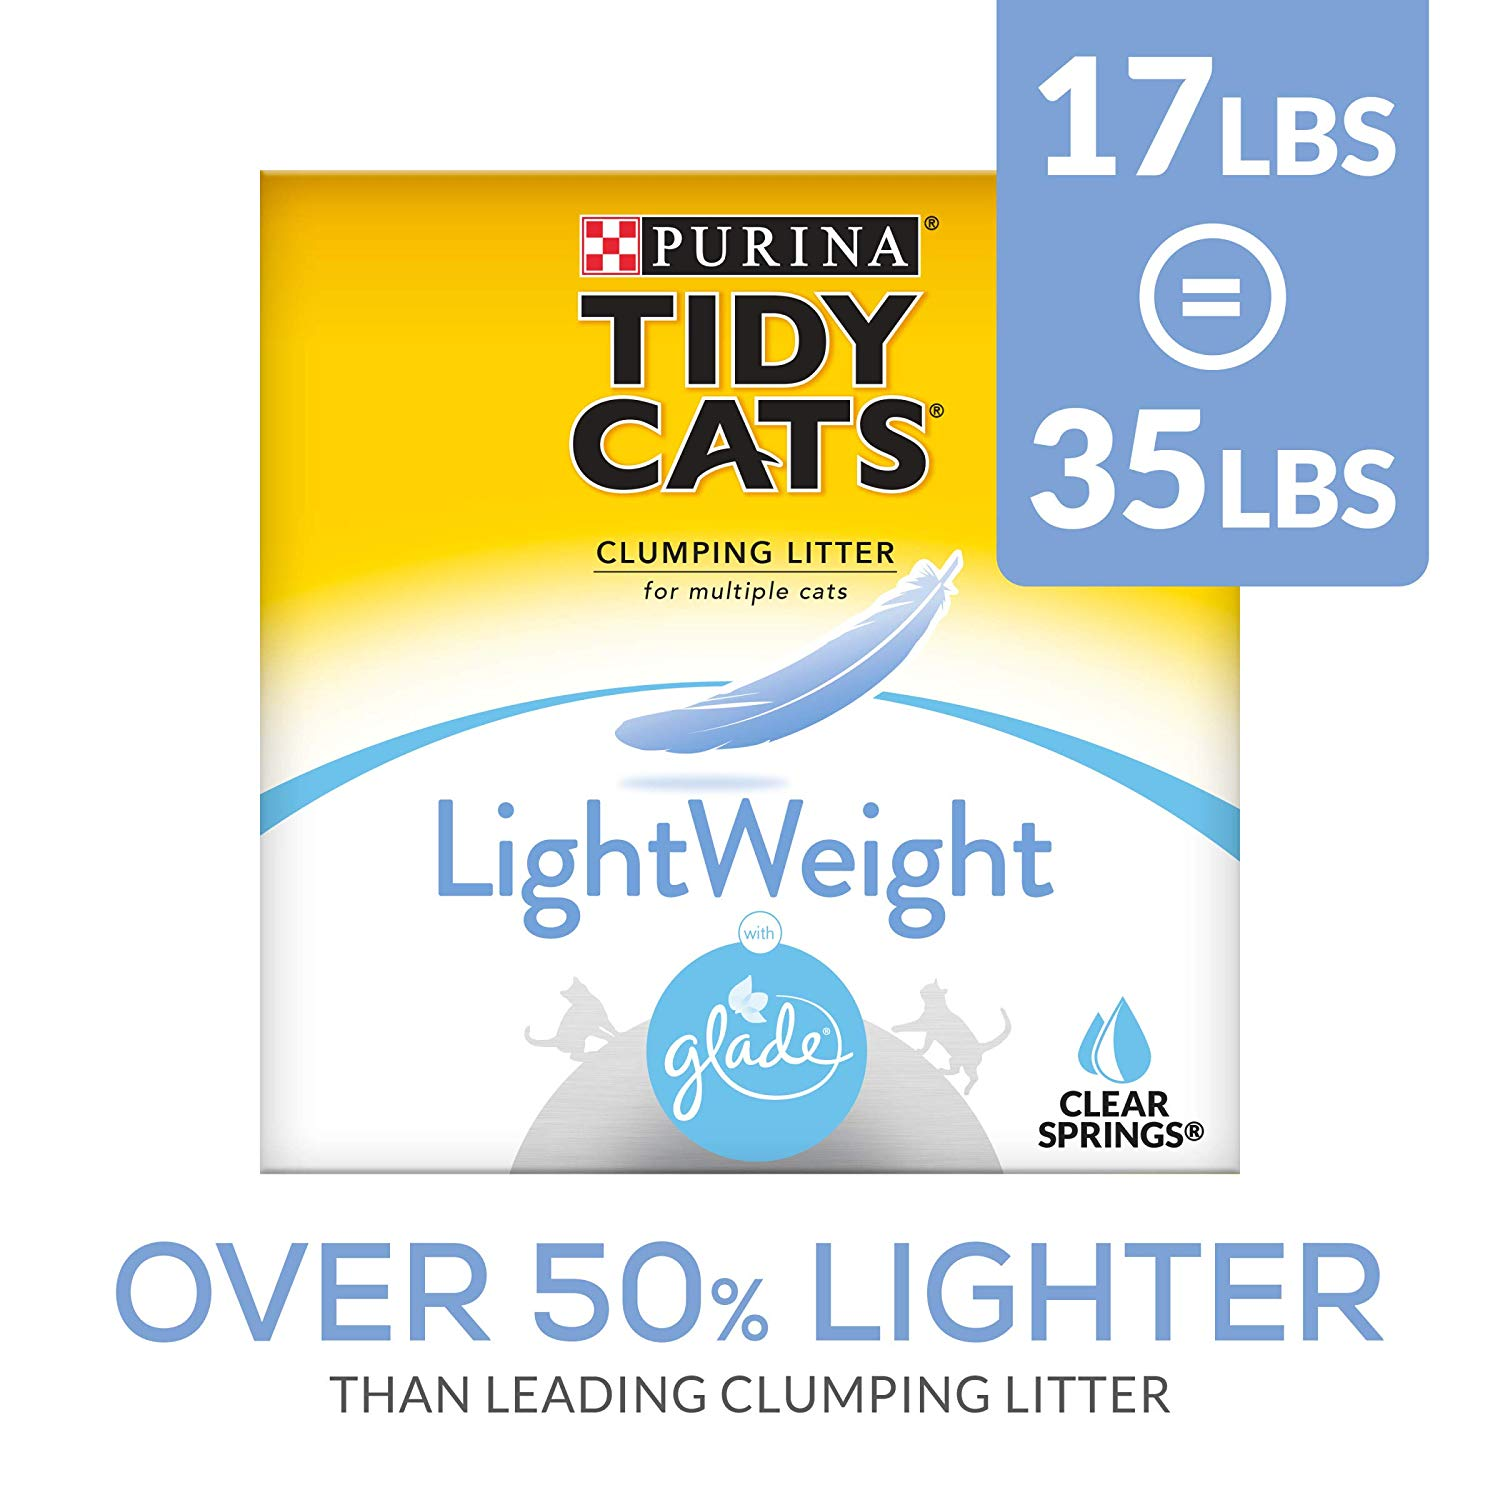 Purina Tidy Cats Clumping Cat Litter (Lightweight Glade)